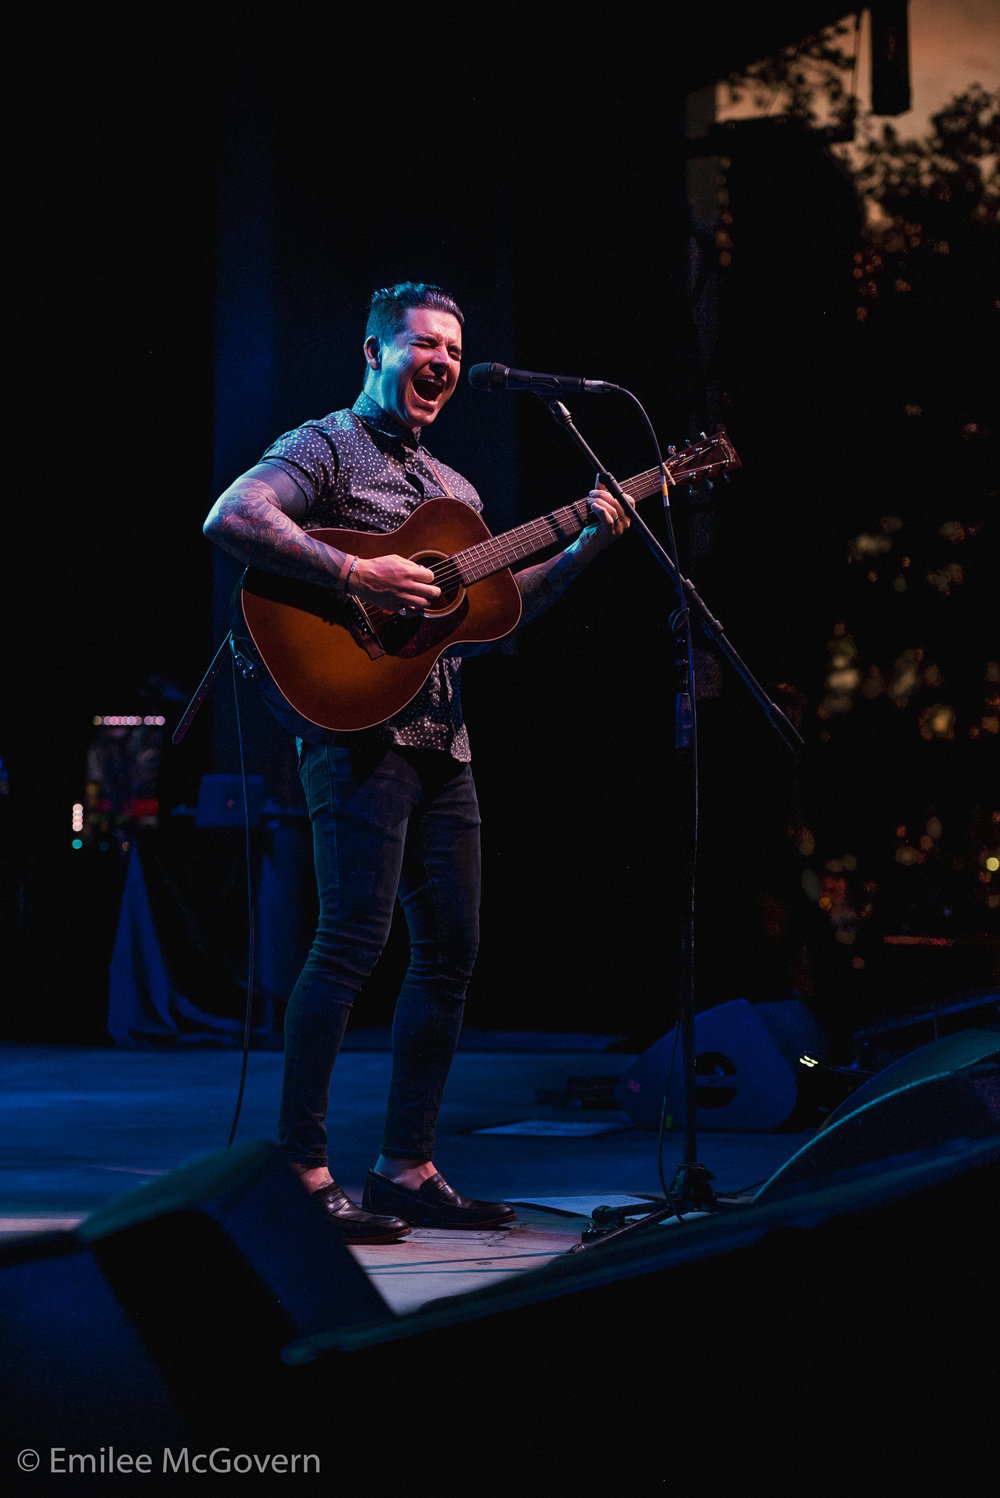 Artist Chris Carrabba of Dashboard confessionals and a South Florida Native, perfoms at the Parkland Strong benefit concert that was held to raise money for Marjory Stoneman Douglas victim families, and survivors. 3,000 people attended the soldout show, in support of their community.